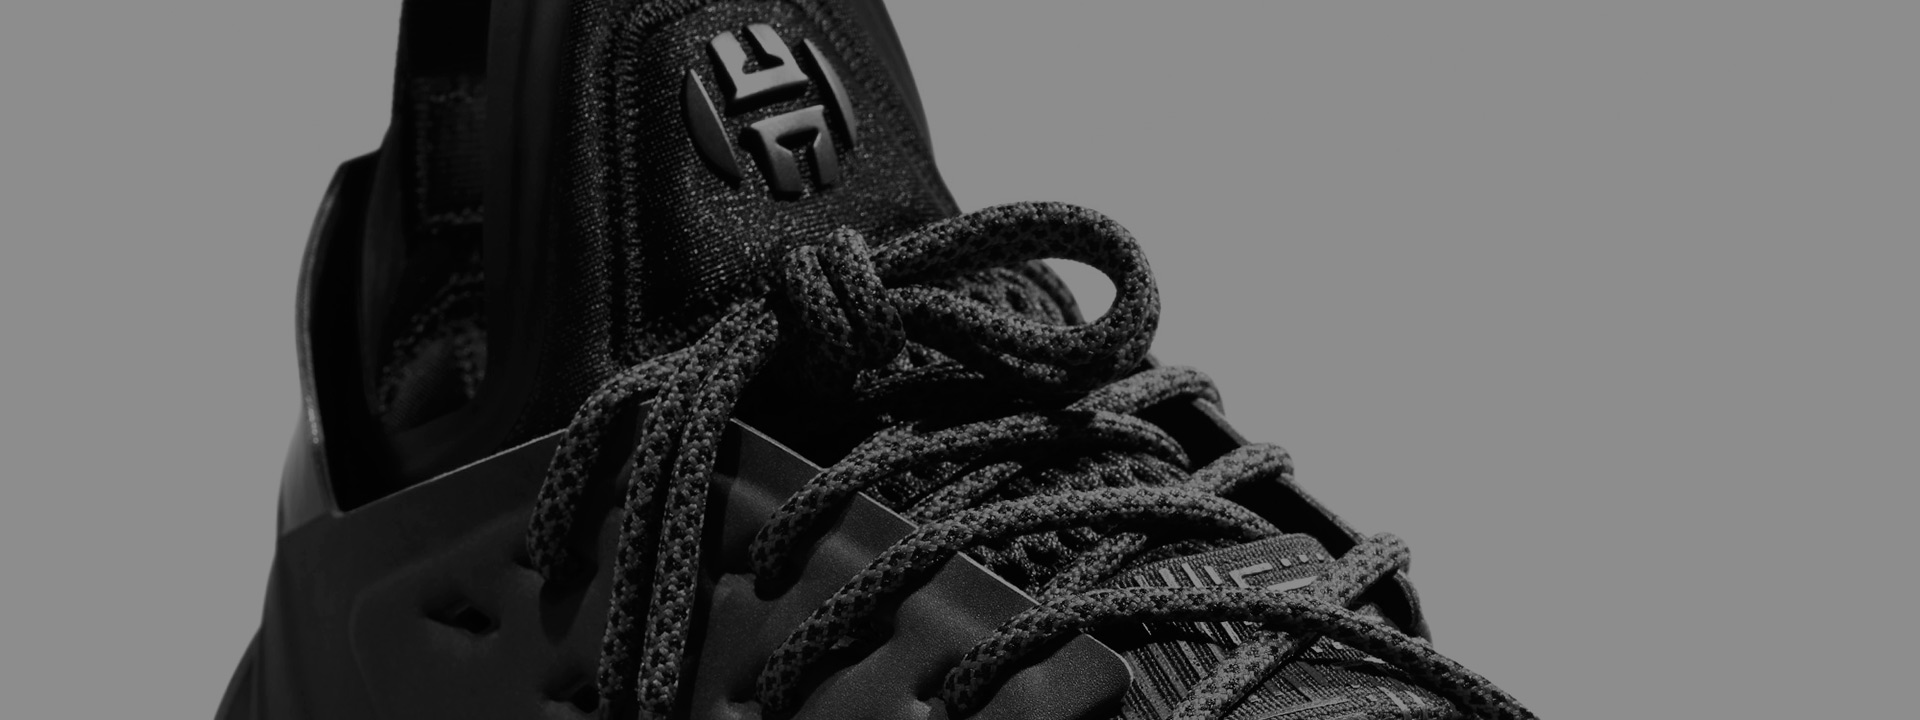 97c645c153e The Design Process Behind The adidas Harden Vol. 2 - SneakerNews.com